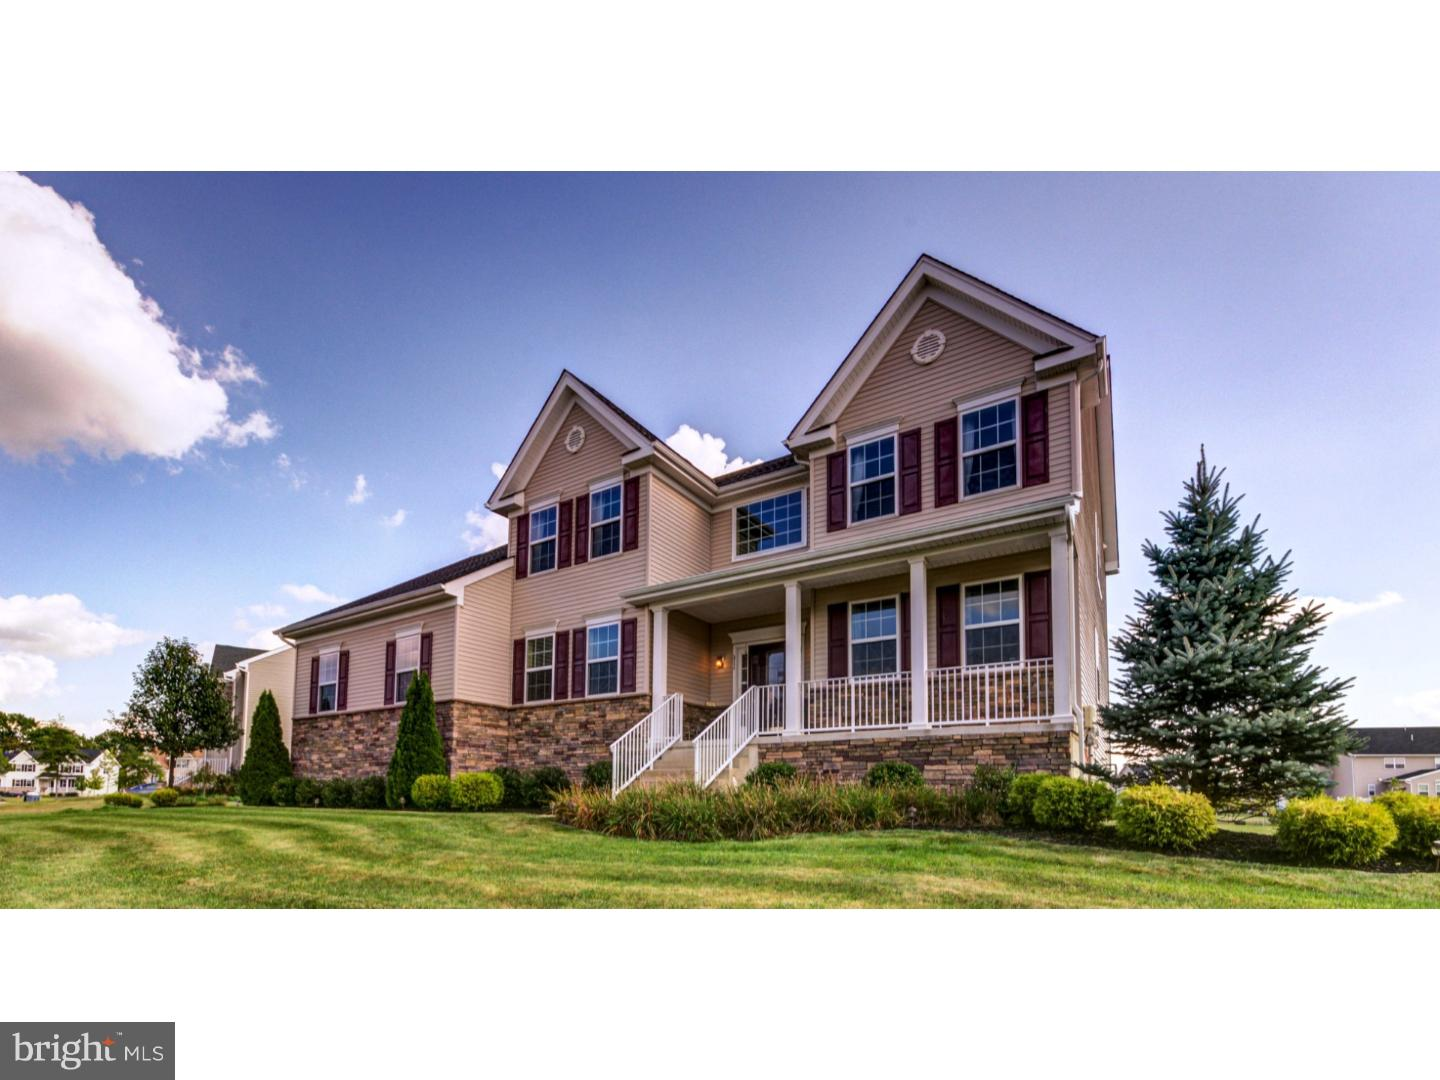 311 CRESCENT DRIVE, BORDENTOWN, NJ 08505